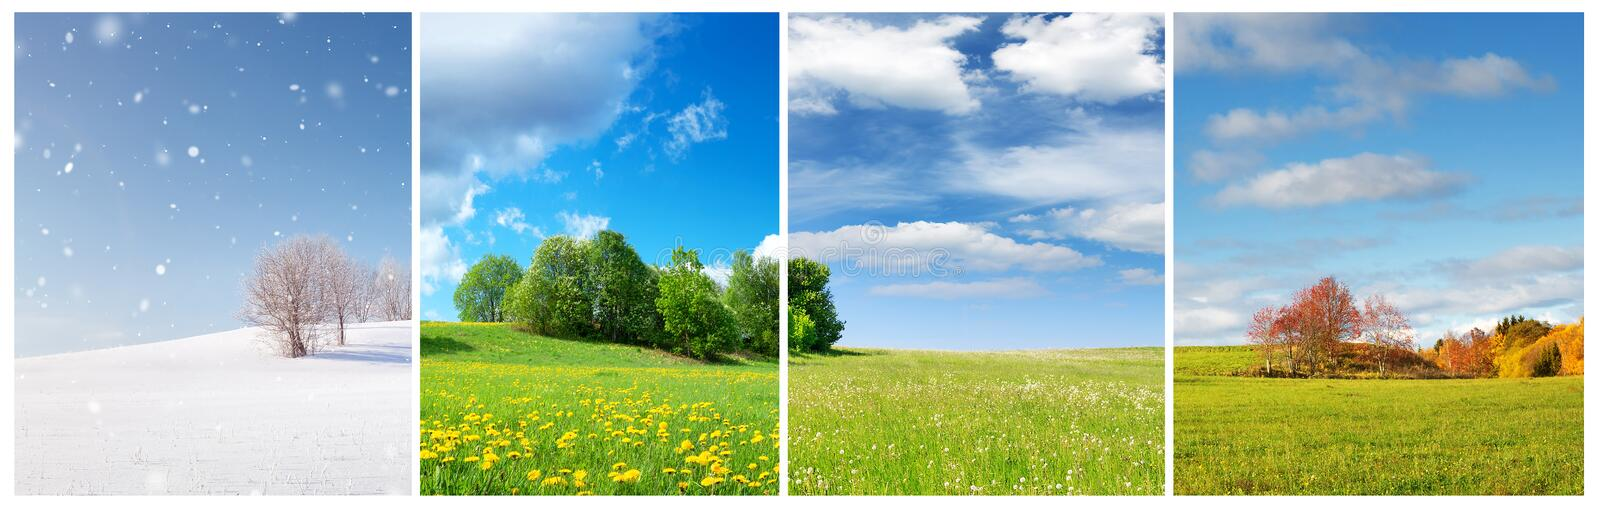 Beautiful trees in four seasons landscape on the field. Spring, summer, autumn and winter collage royalty free stock photo